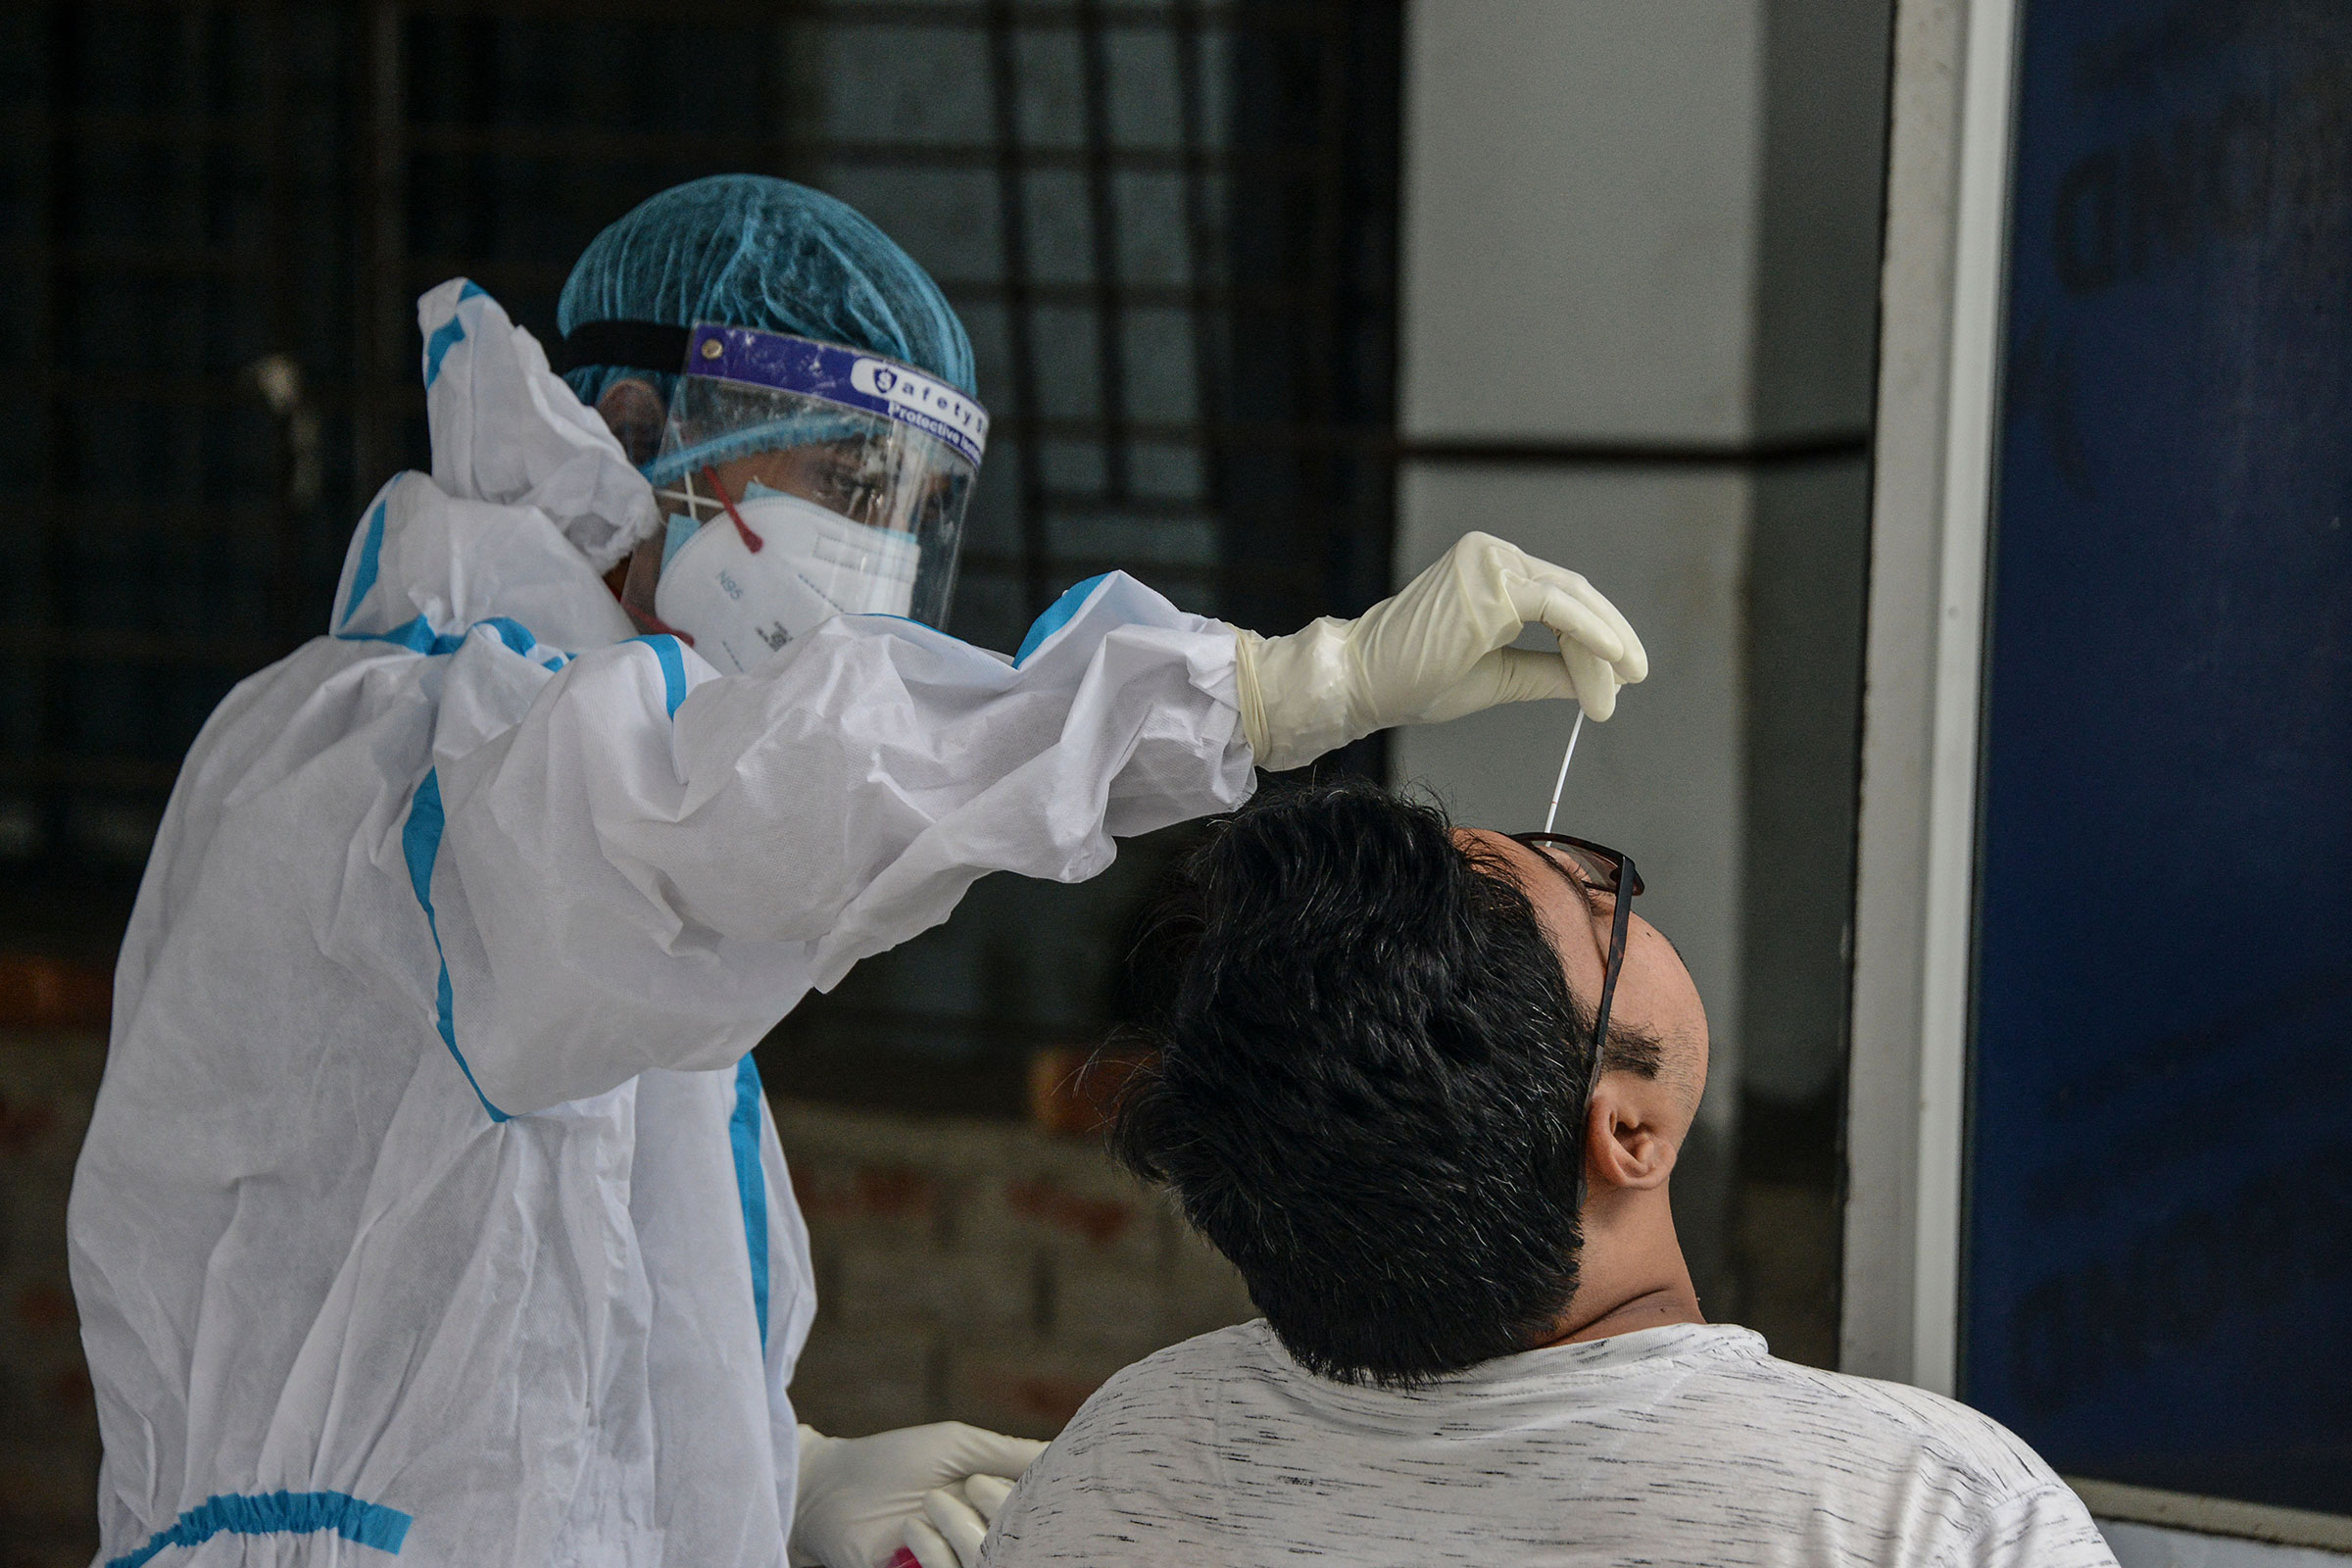 A health worker collects a sample for a COVID-19 test at the North Bengal Medical college and hospital on the outskirts of Siliguri on June 8, 2021.